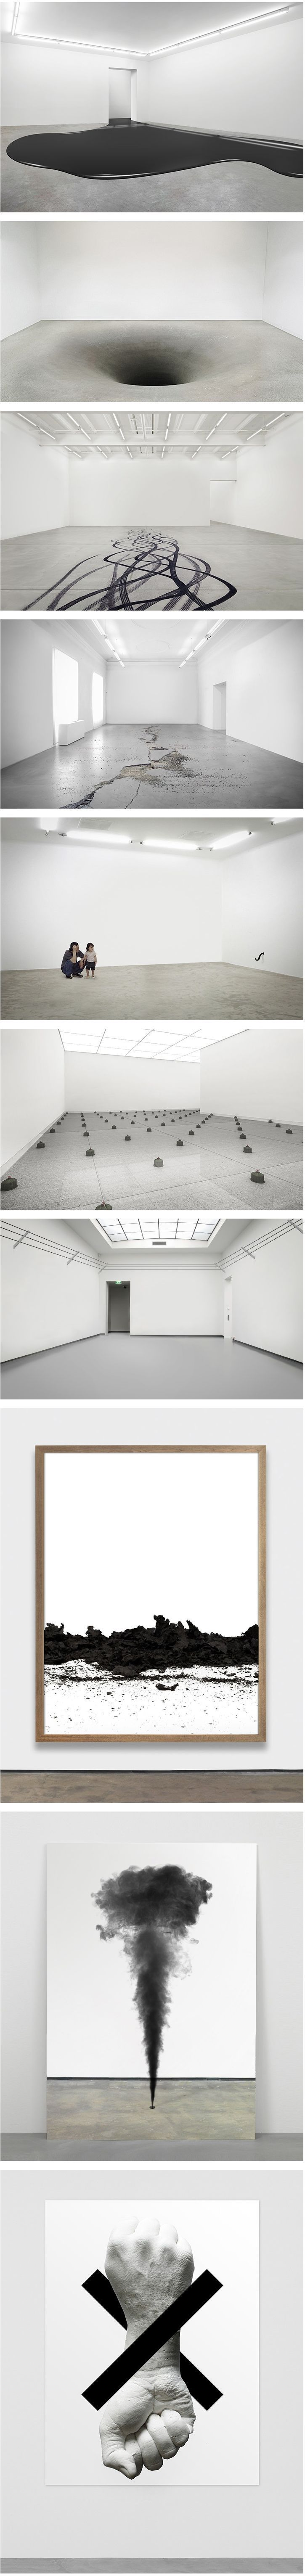 Fabian Bürgy a sense of the improbable. This Swiss artist born in 1980 turns everyday objects at the heart of its facilities. Installations in museal context.: